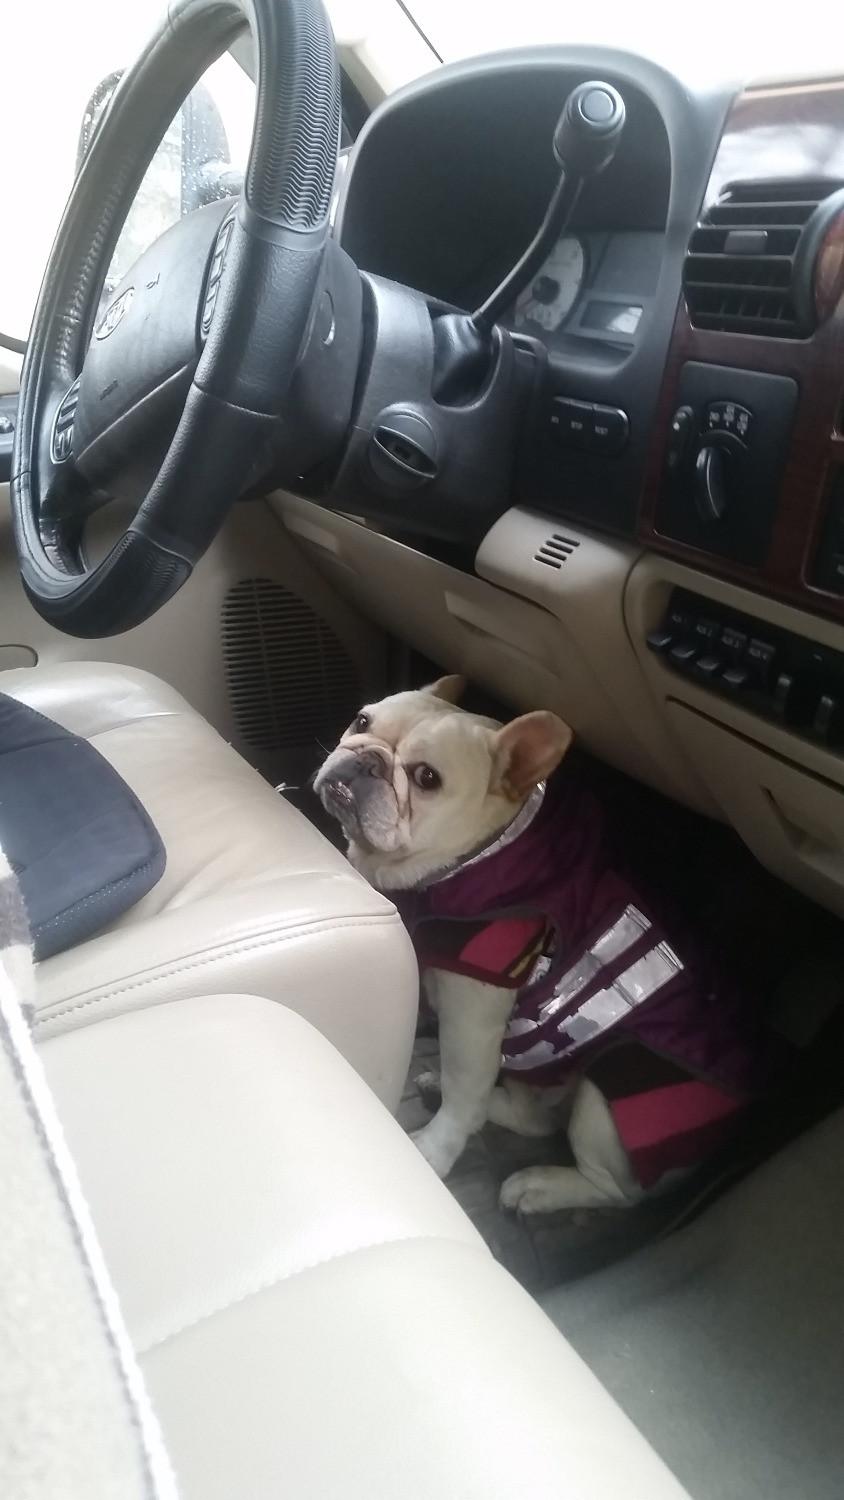 Mona, our french bulldog landscaper, sitting down in driver's side pedals in her Ford250